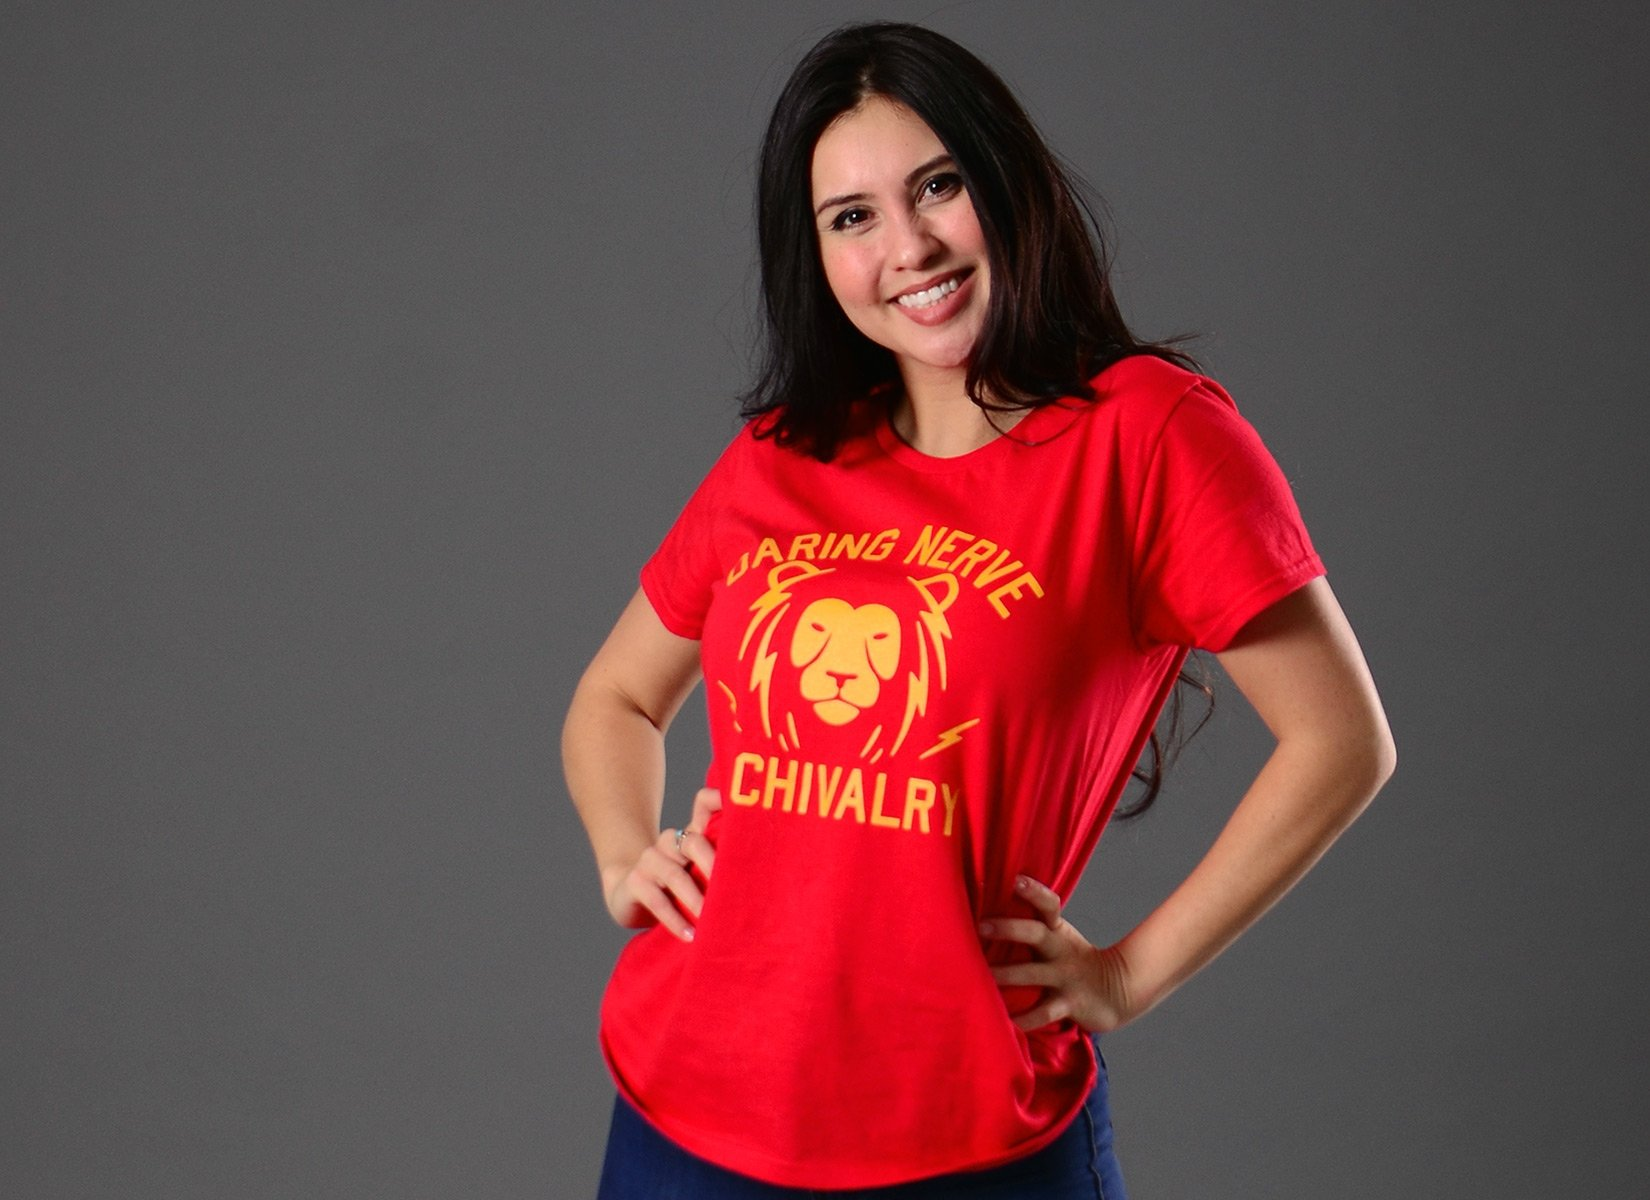 Daring, Nerve, And Chivalry on Womens T-Shirt